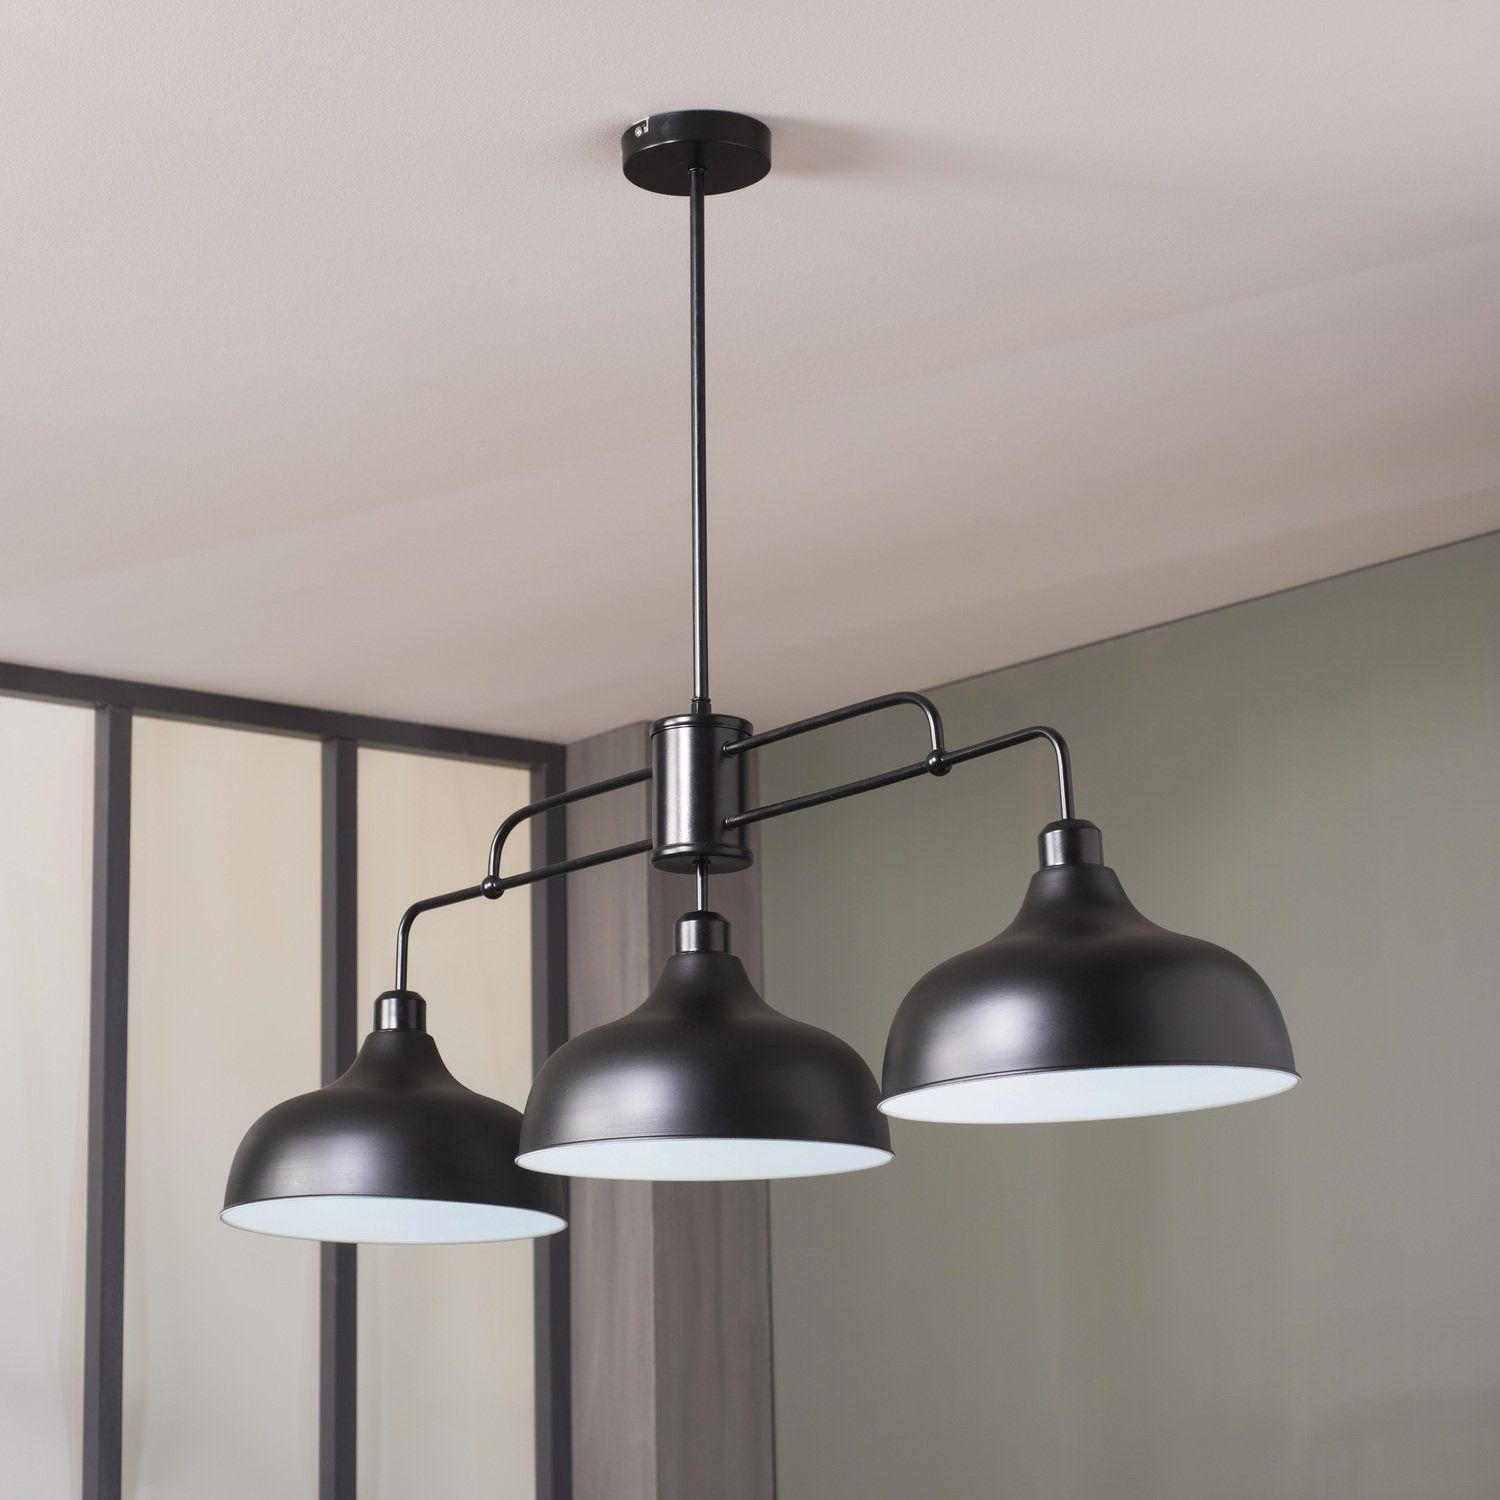 Cette suspension design adopte un style r solument for Luminaires pour cuisine suspension moderne